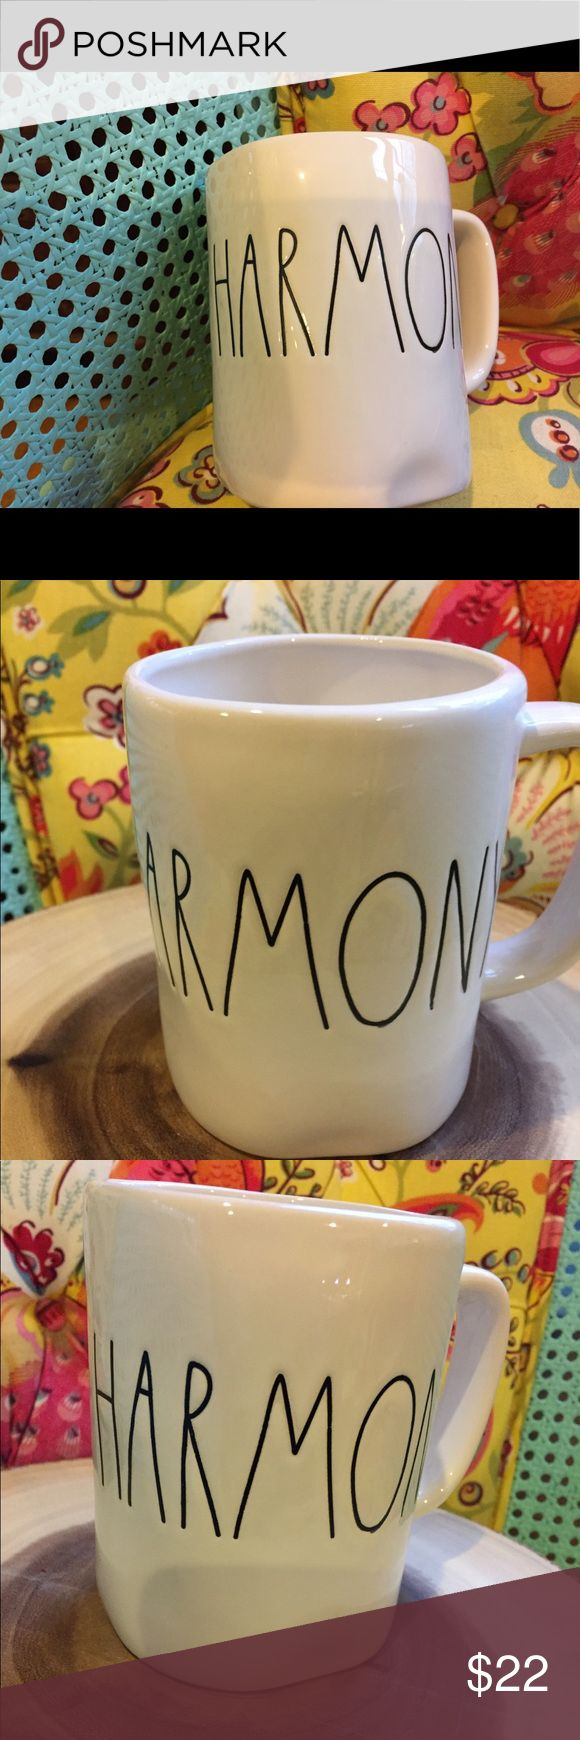 Rae Dunn Harmony Mug Big Letter New Rae Dunn  Harmony Big letter mug  No chips or cracks  Mother's Day Graduation Teacher Music   Packed with care   Rae Dunn clay Farmhouse chic Country Magnolia Rae Dunn Other